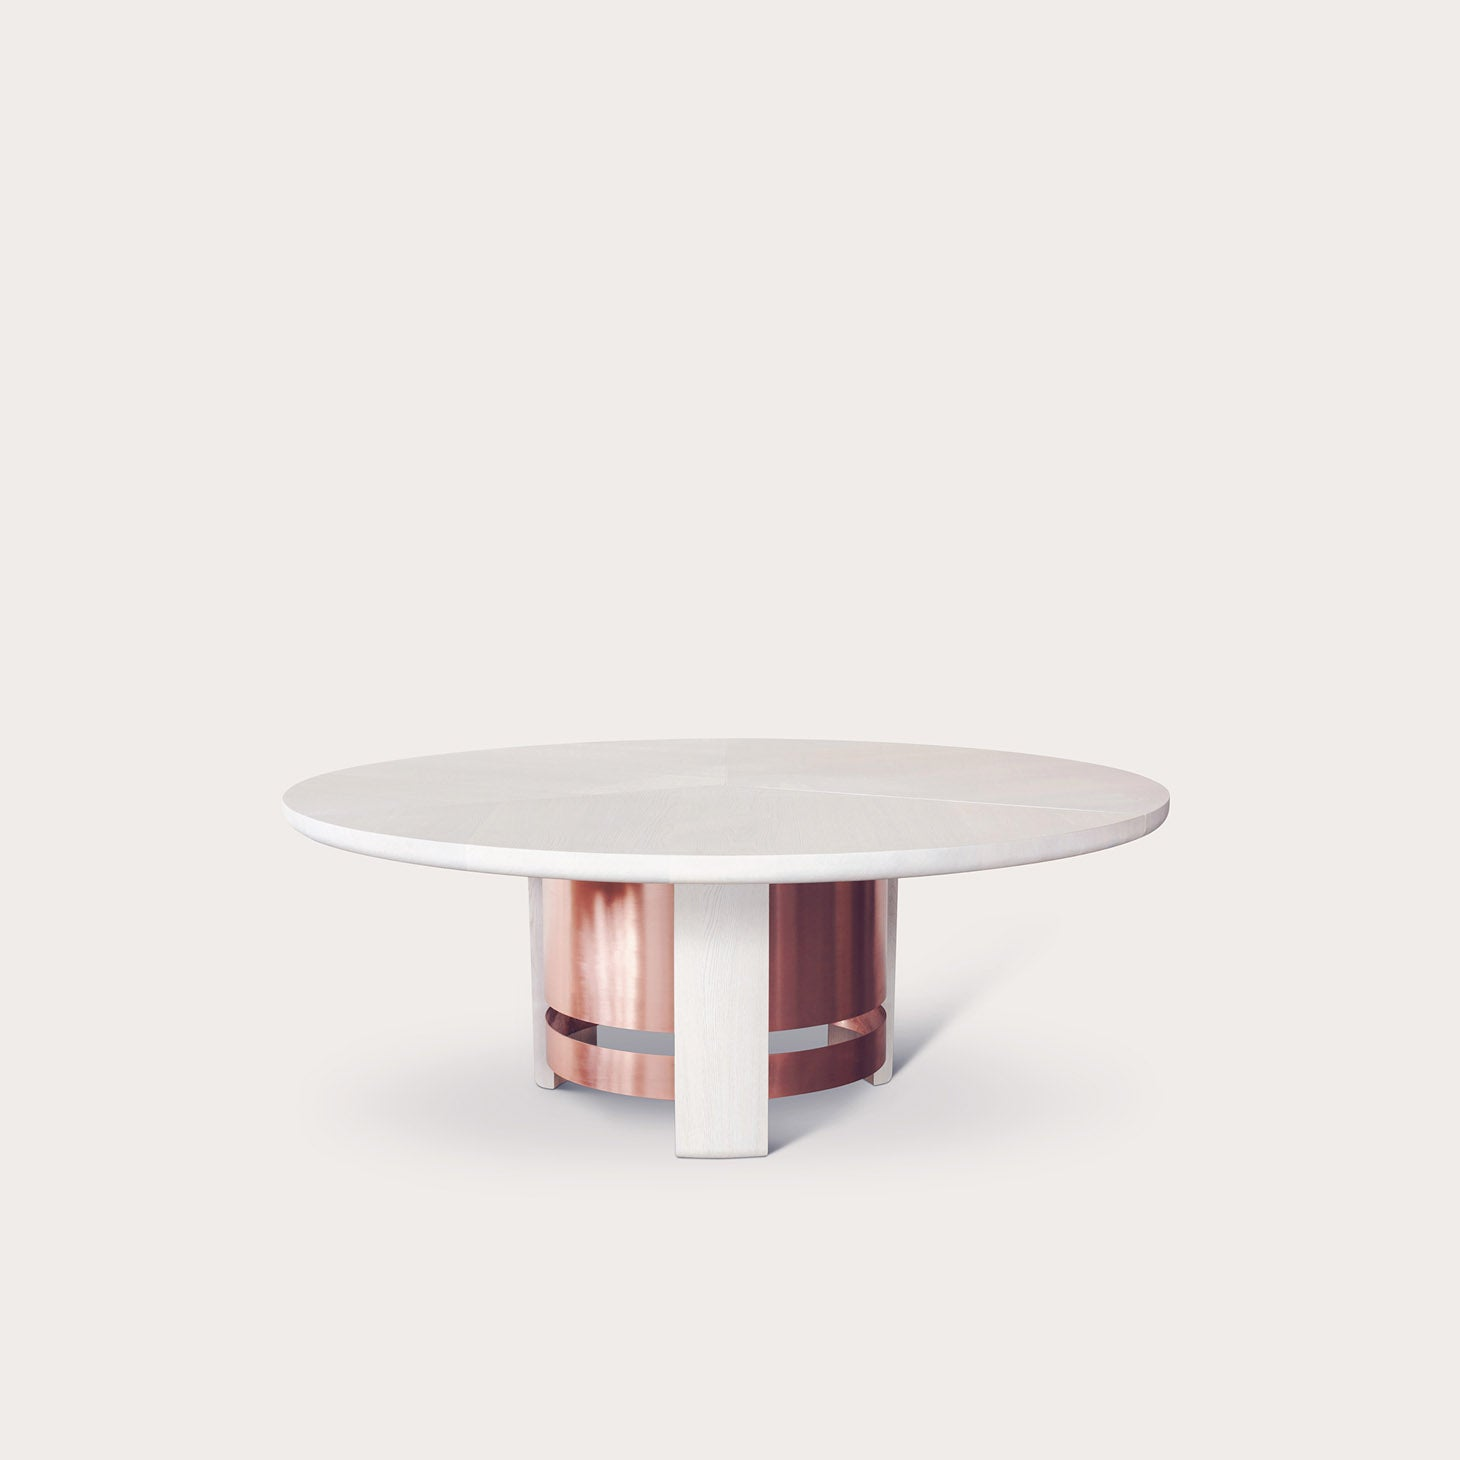 Kitale XL Tables Xavier Dohr Designer Furniture Sku: 416-230-10157